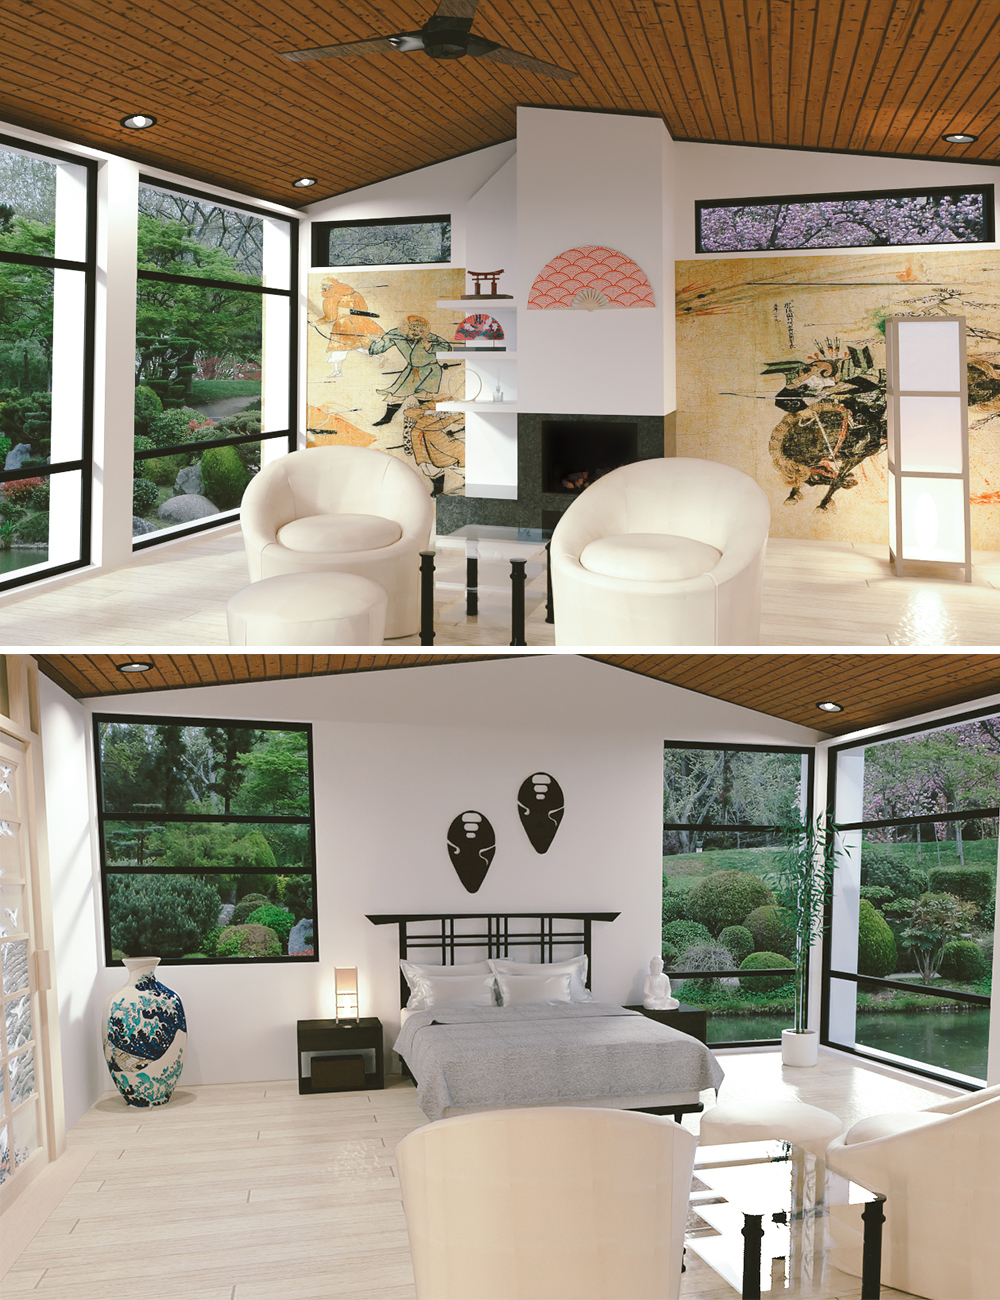 Asian Master Suite by: kubramatic, 3D Models by Daz 3D